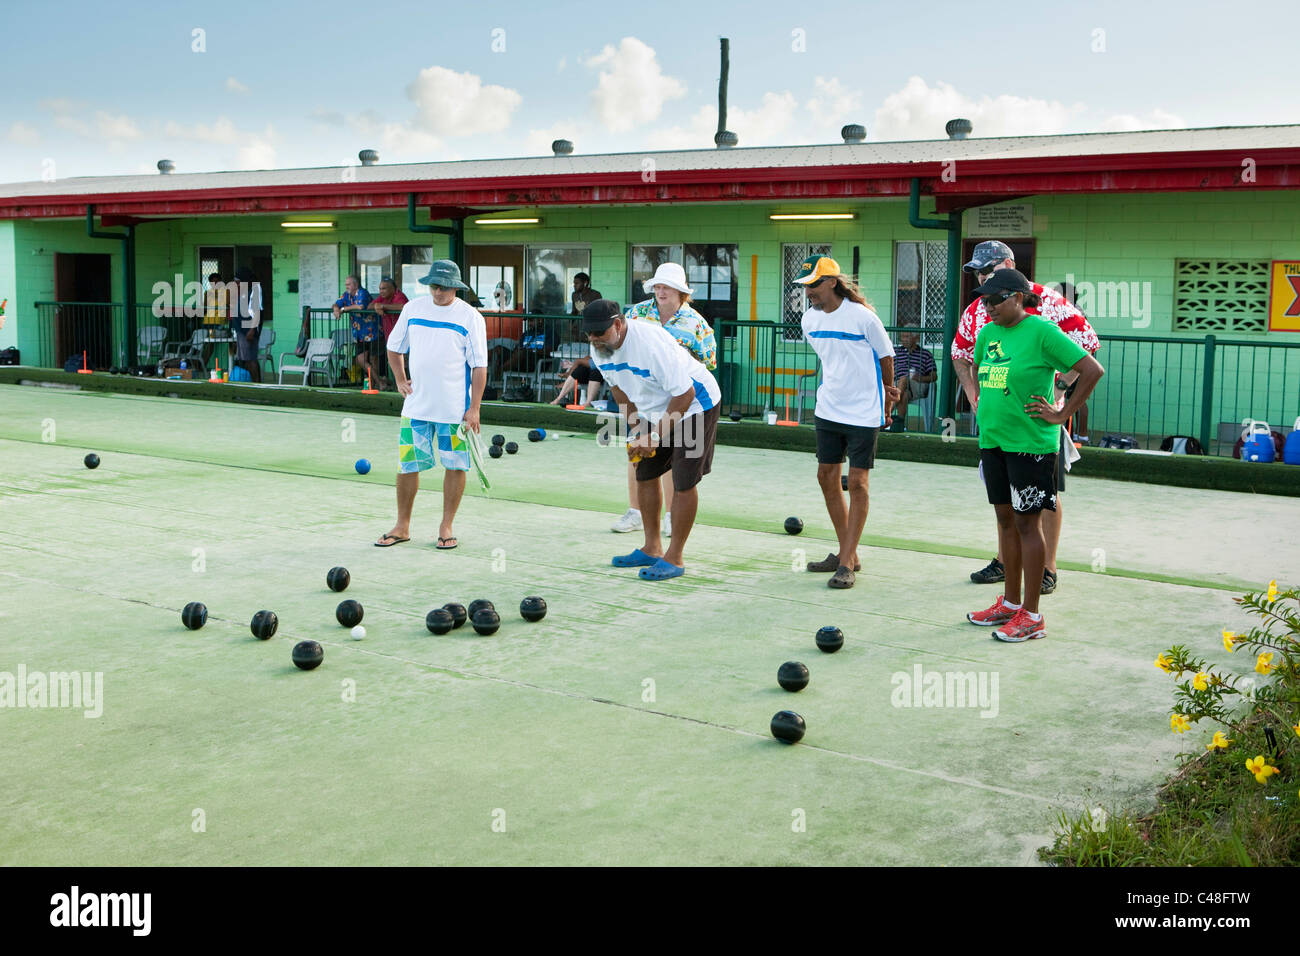 Men playing lawn bowls at the Thursday Island Bowls club. Thursday Island, Torres Strait Islands, Queensland, Australia - Stock Image